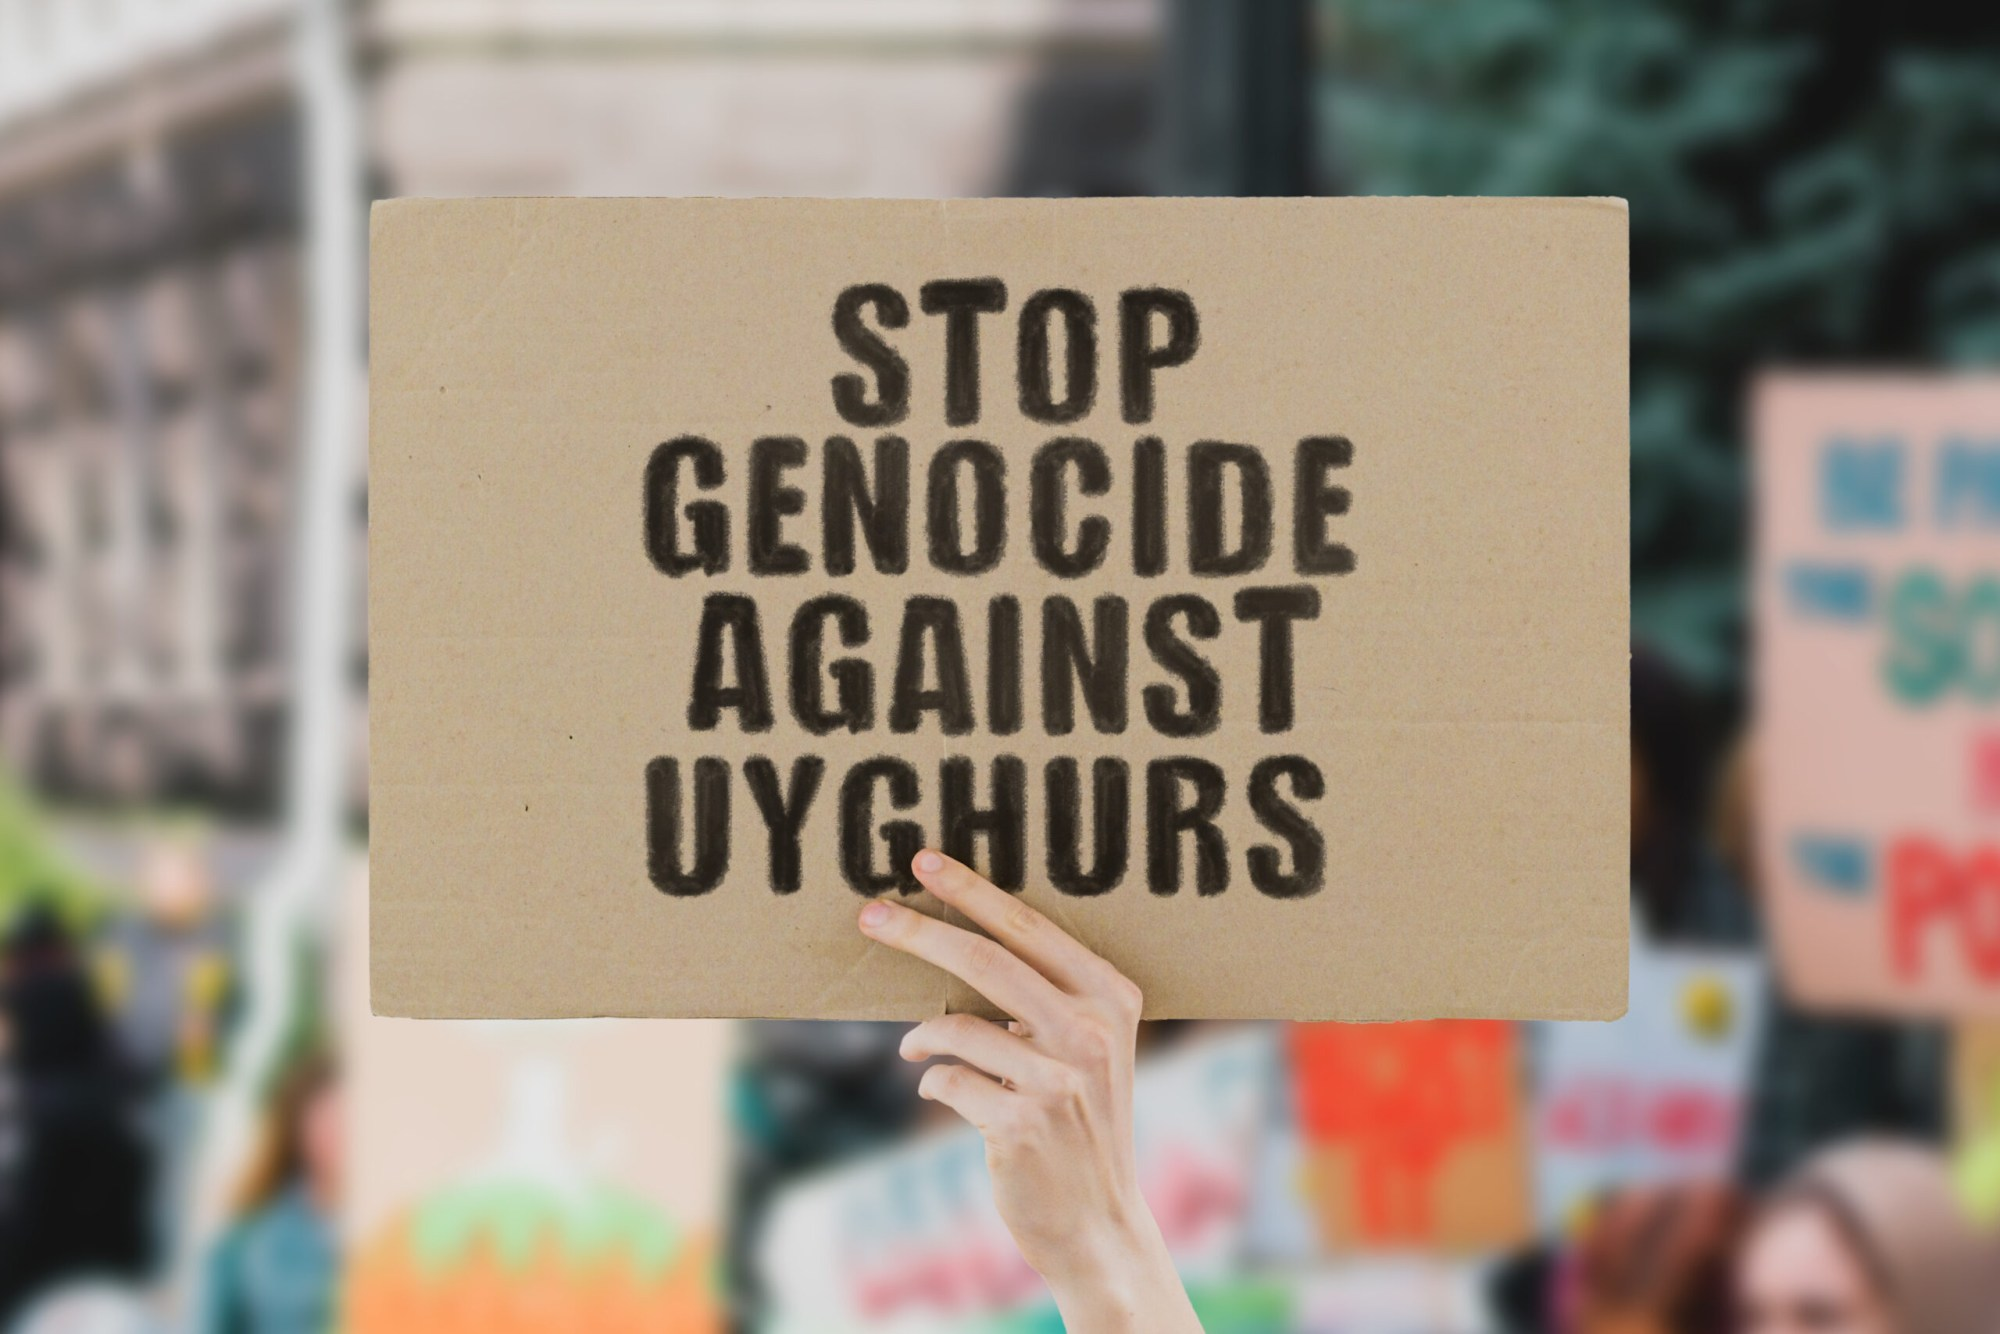 22nd March is the day that Parliament must decide to take a stand against genocide